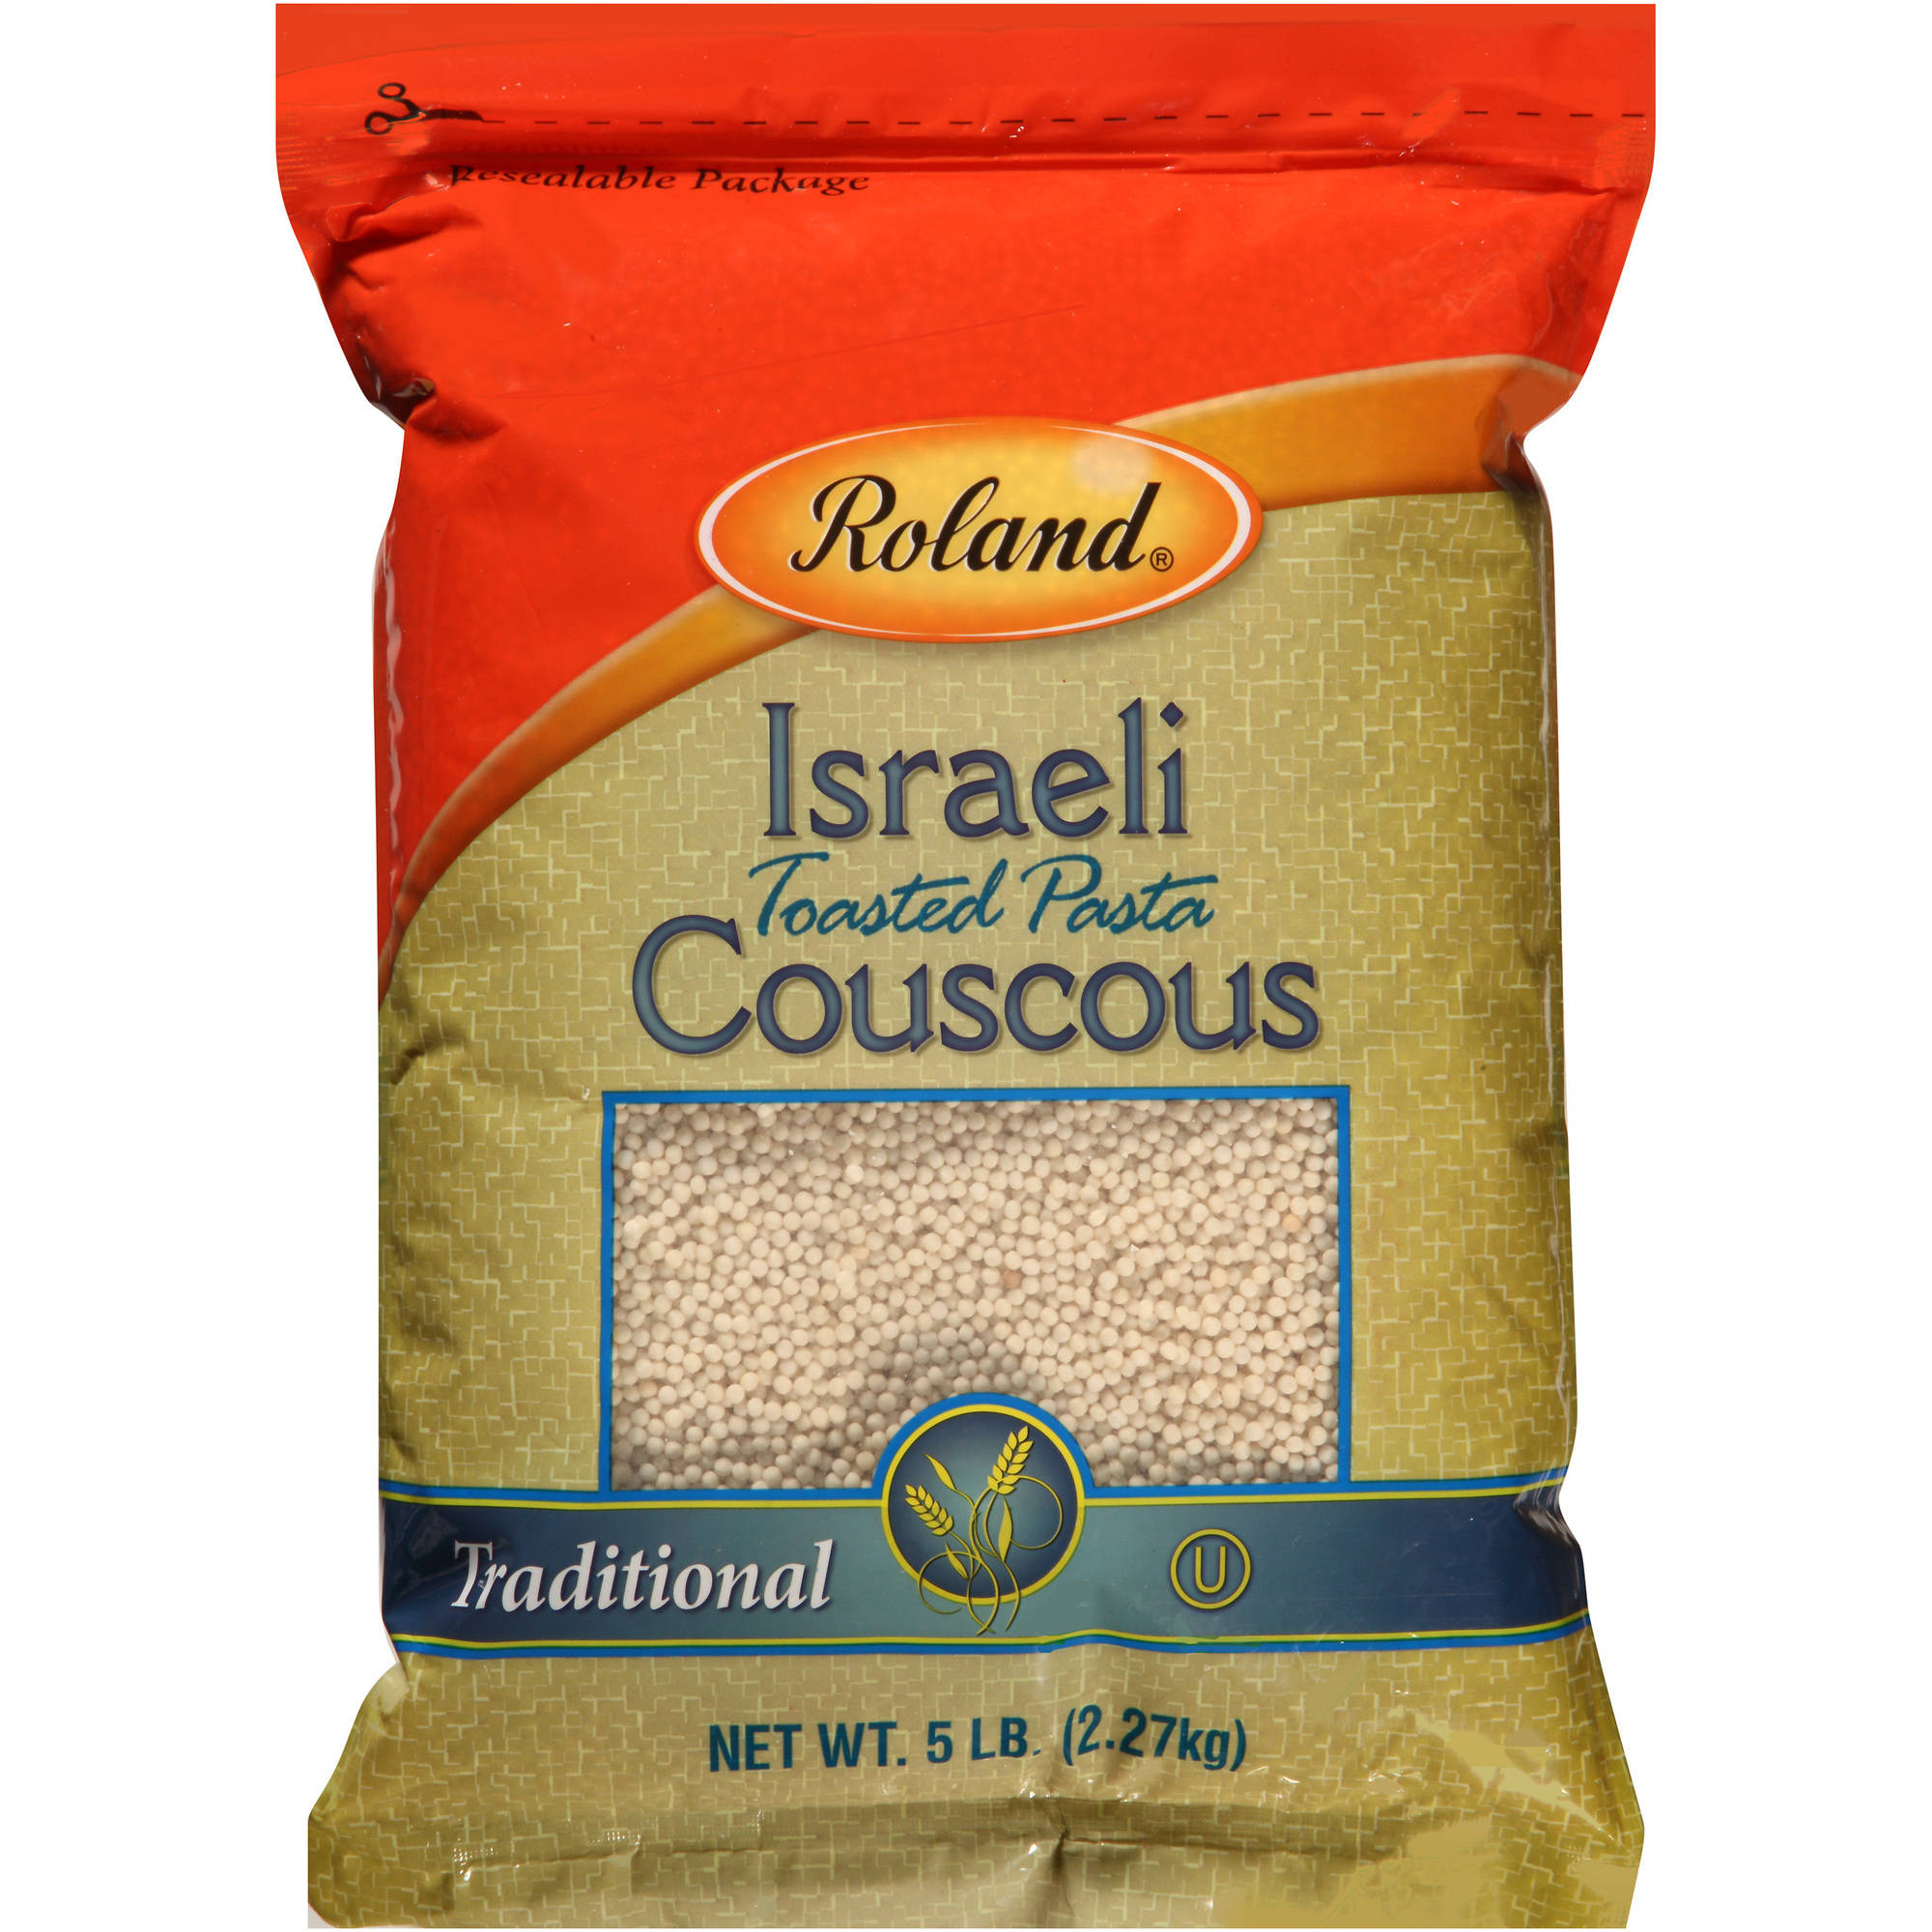 Roland Israeli Toasted Pasta Traditional Couscous, 5 lb